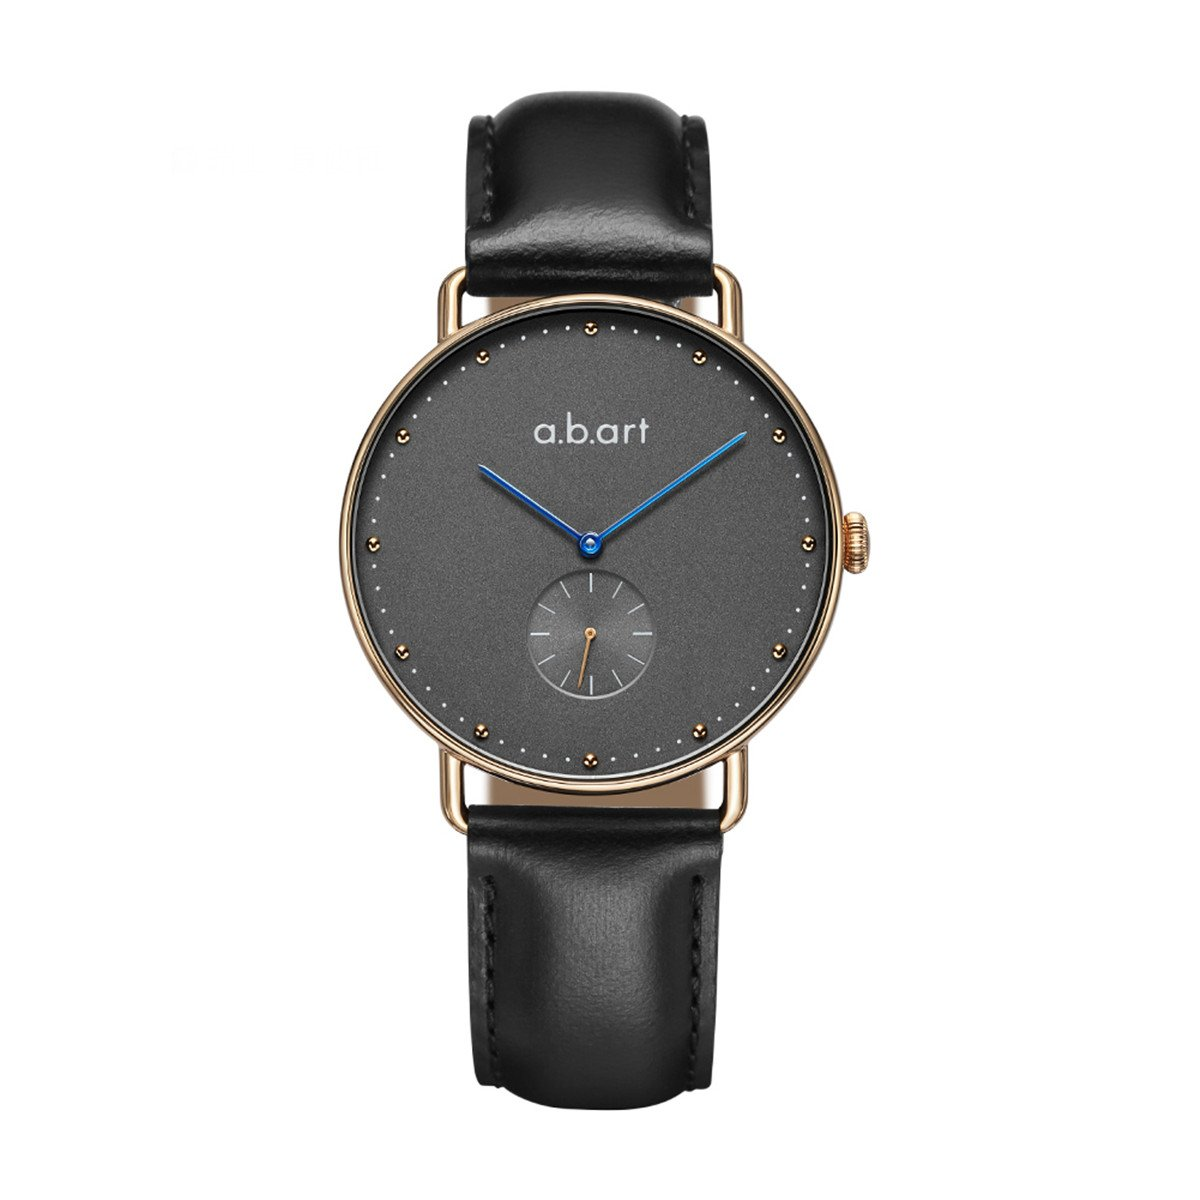 abart Her Watches FR36-004-1L Grey Dial Rose Gold Case Leather Watches (Black Lido Strap)